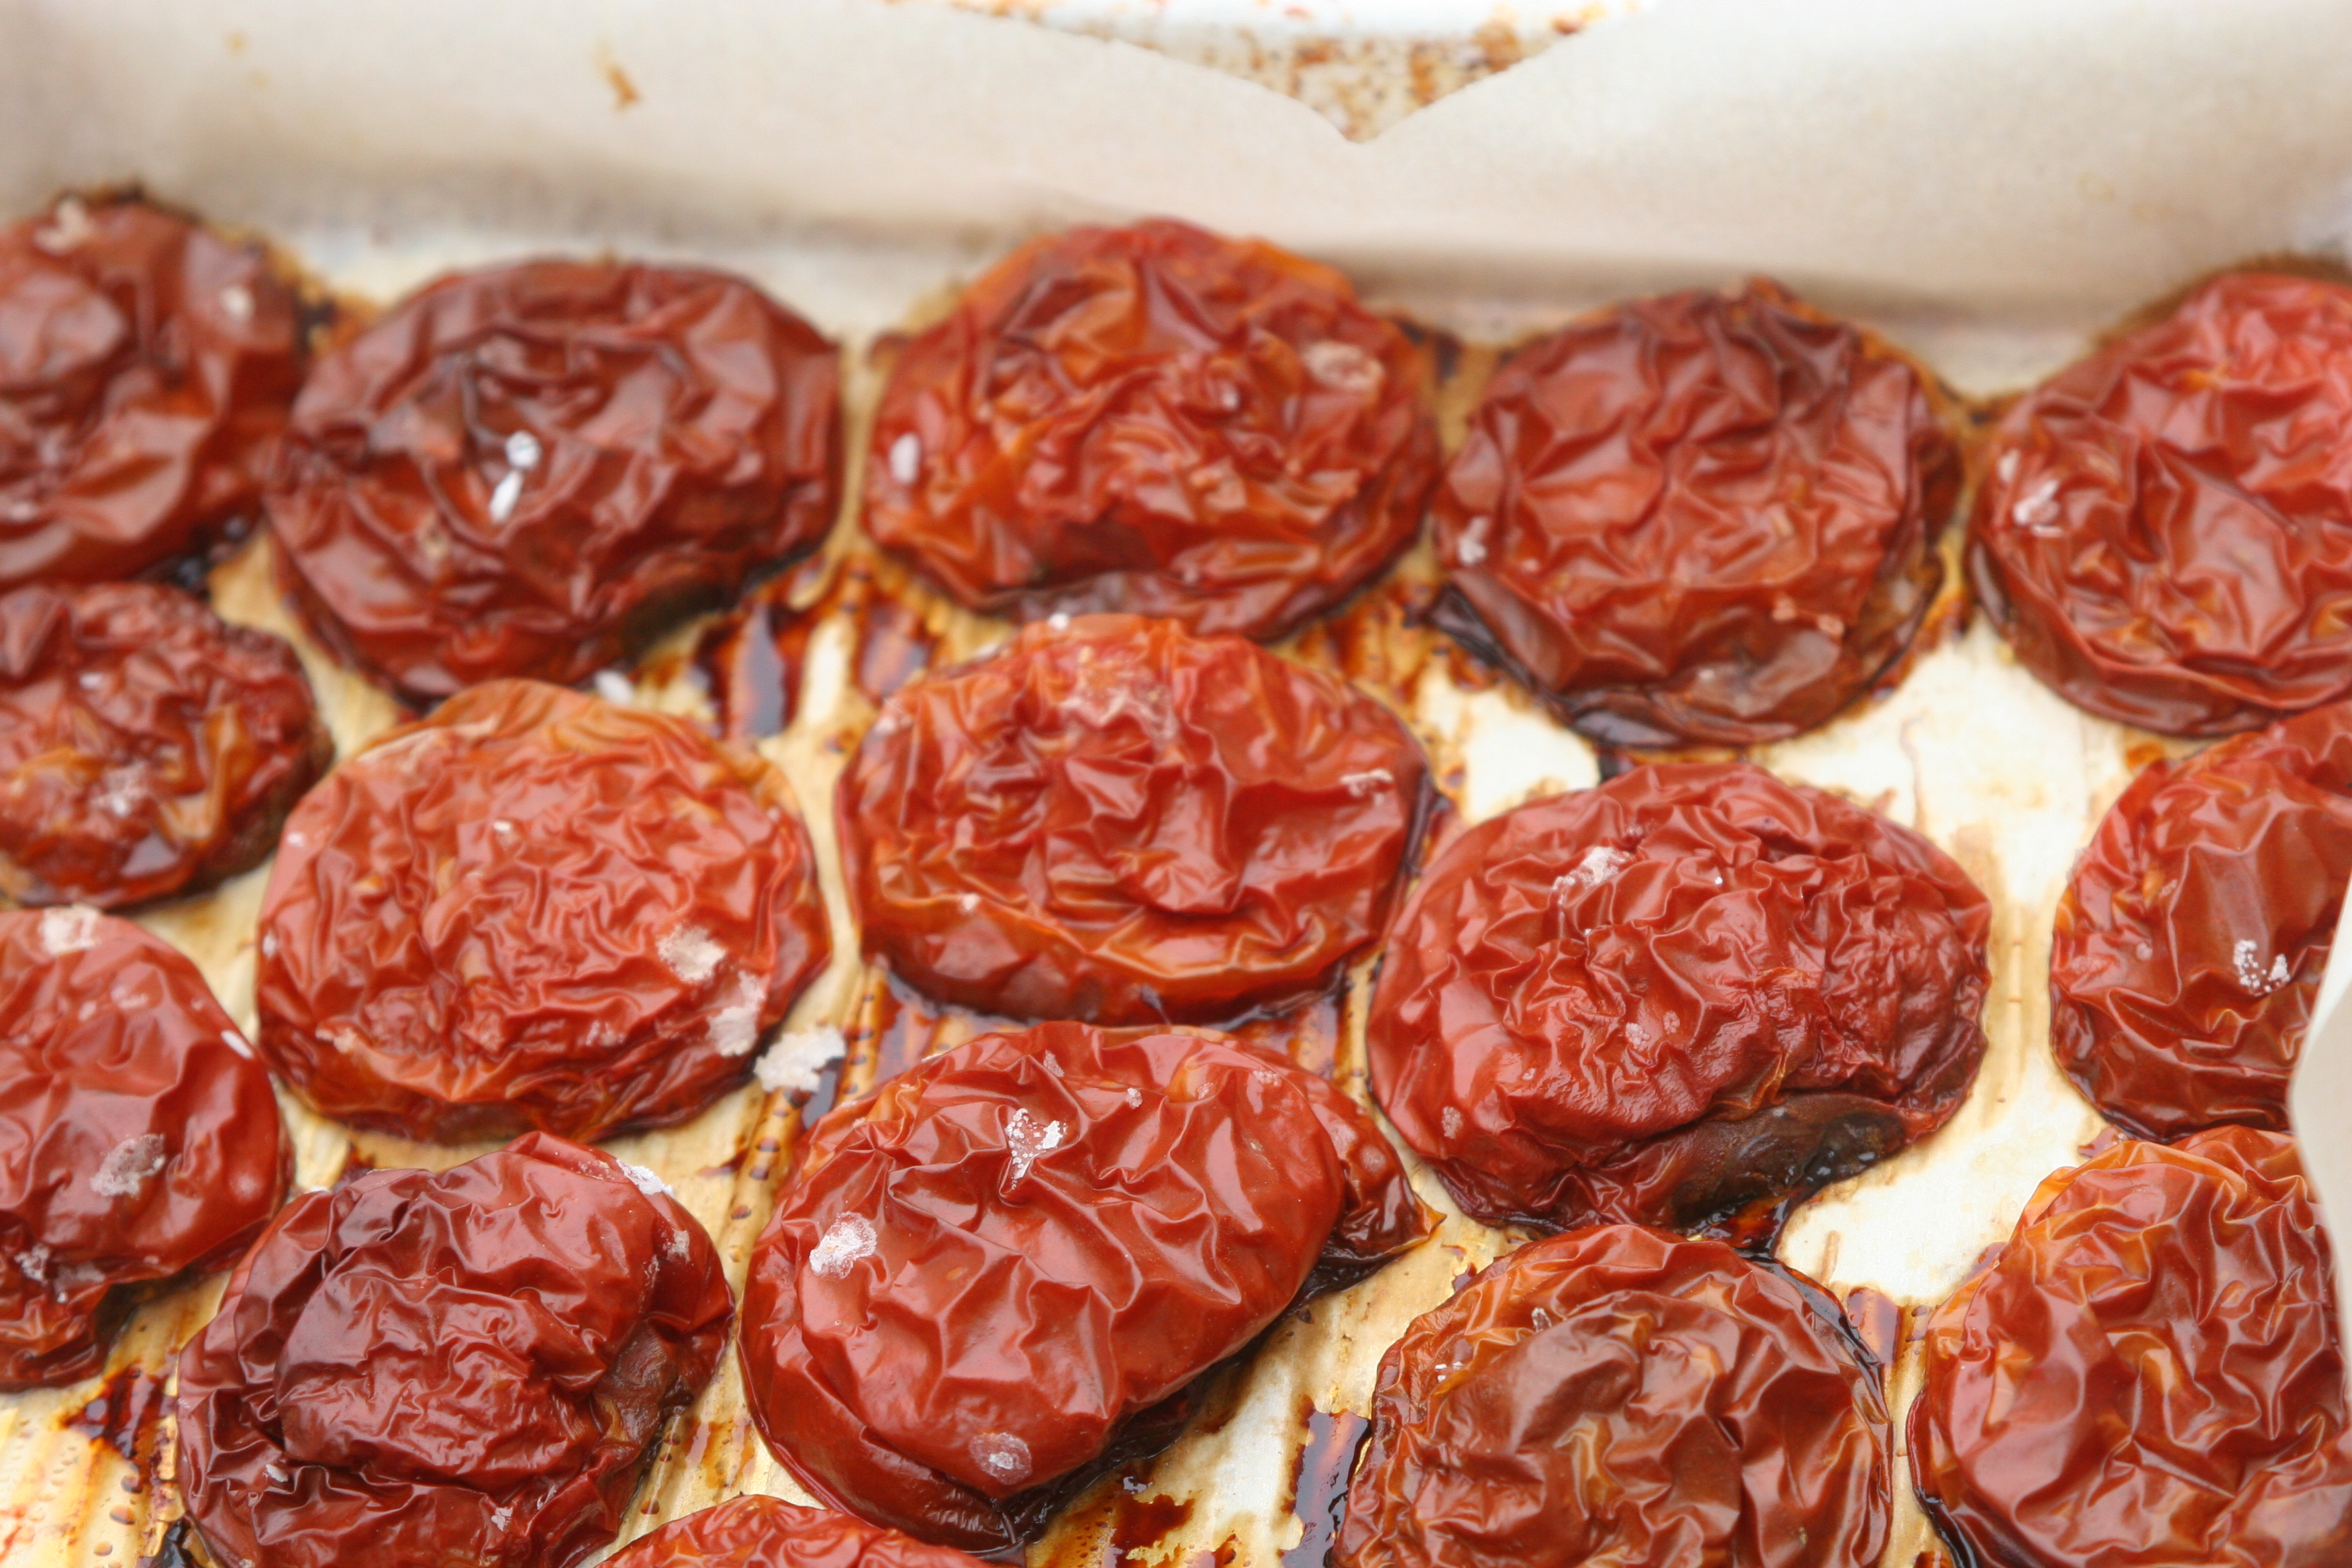 Oven roasted tomatoes with olive oil and salt la cuoca for Dry roasted tomatoes